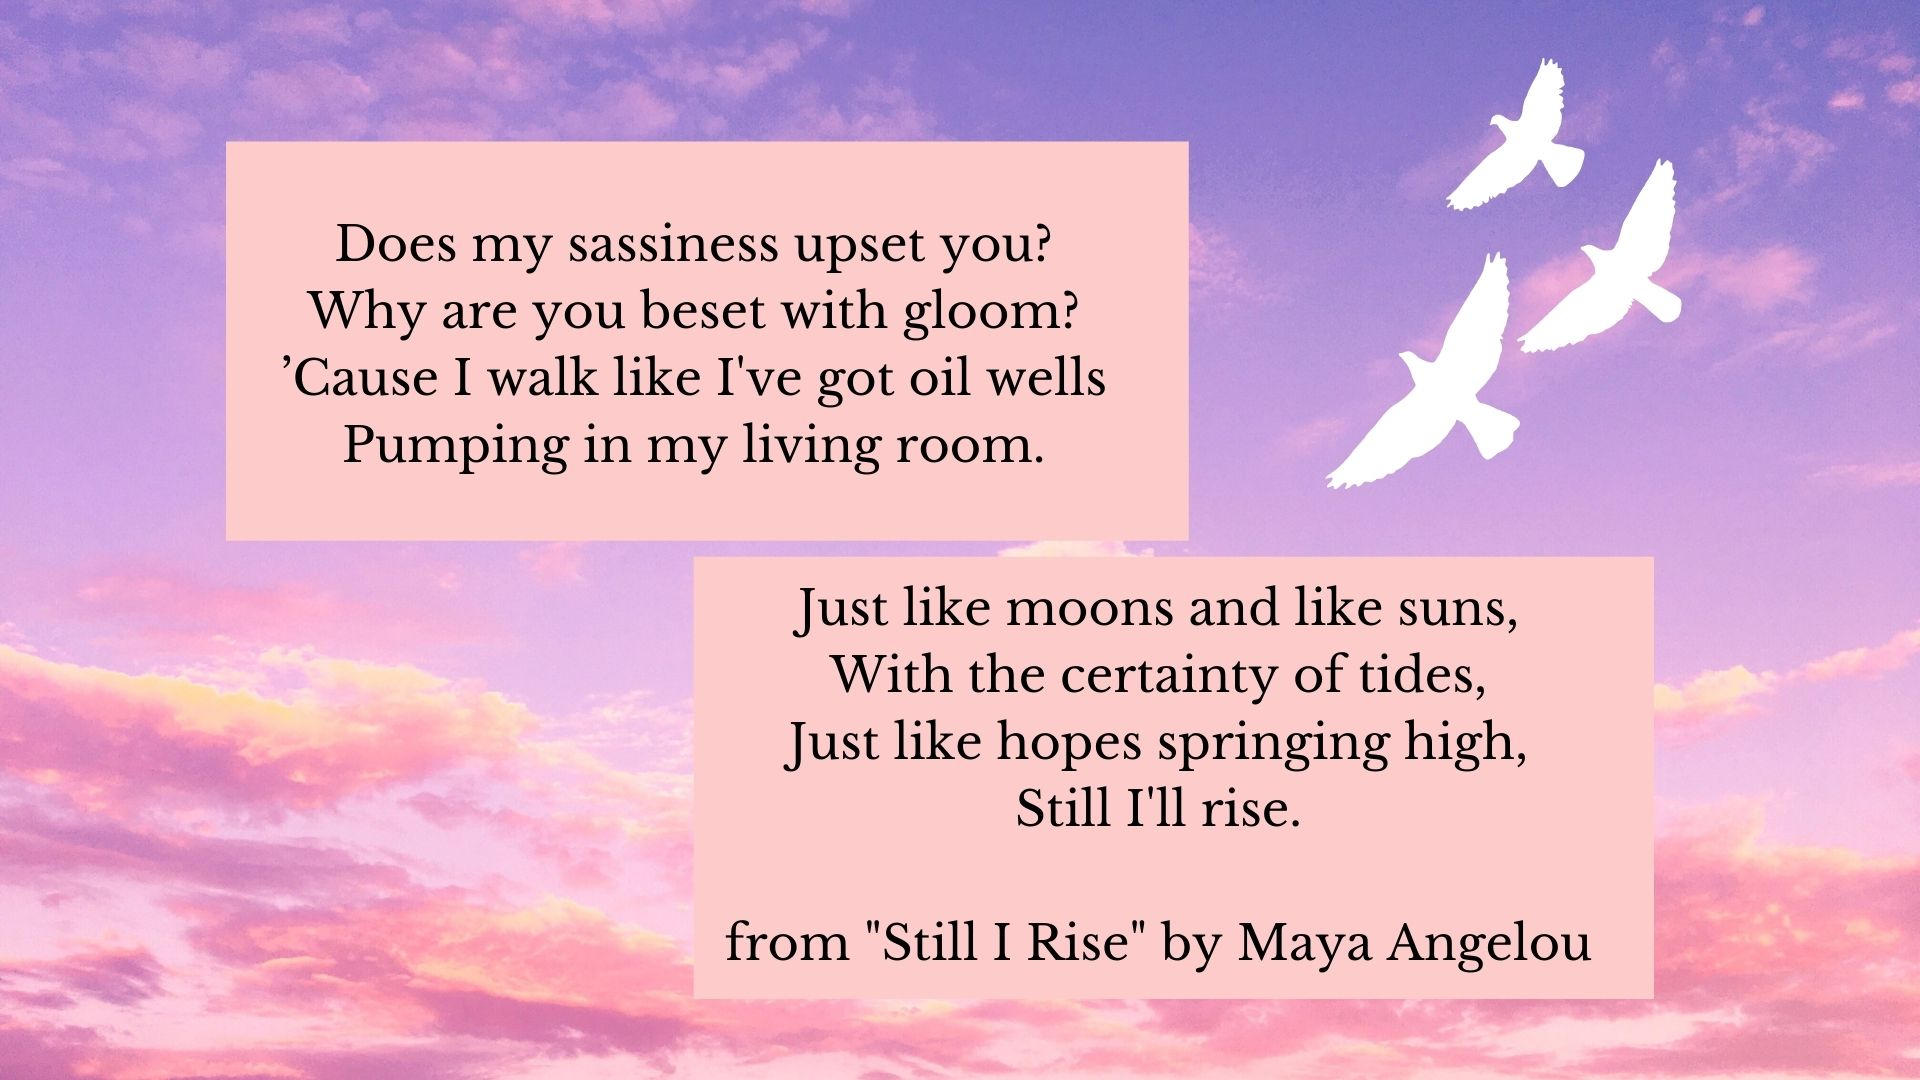 Does my sassiness upset you? Why are you beset with gloom? 'Cause I walk like I've got oil wells Pumping in my living room. Just like moons and like suns, With the certainty of tides, Just like hopes springing high, Still I'll rise.  from